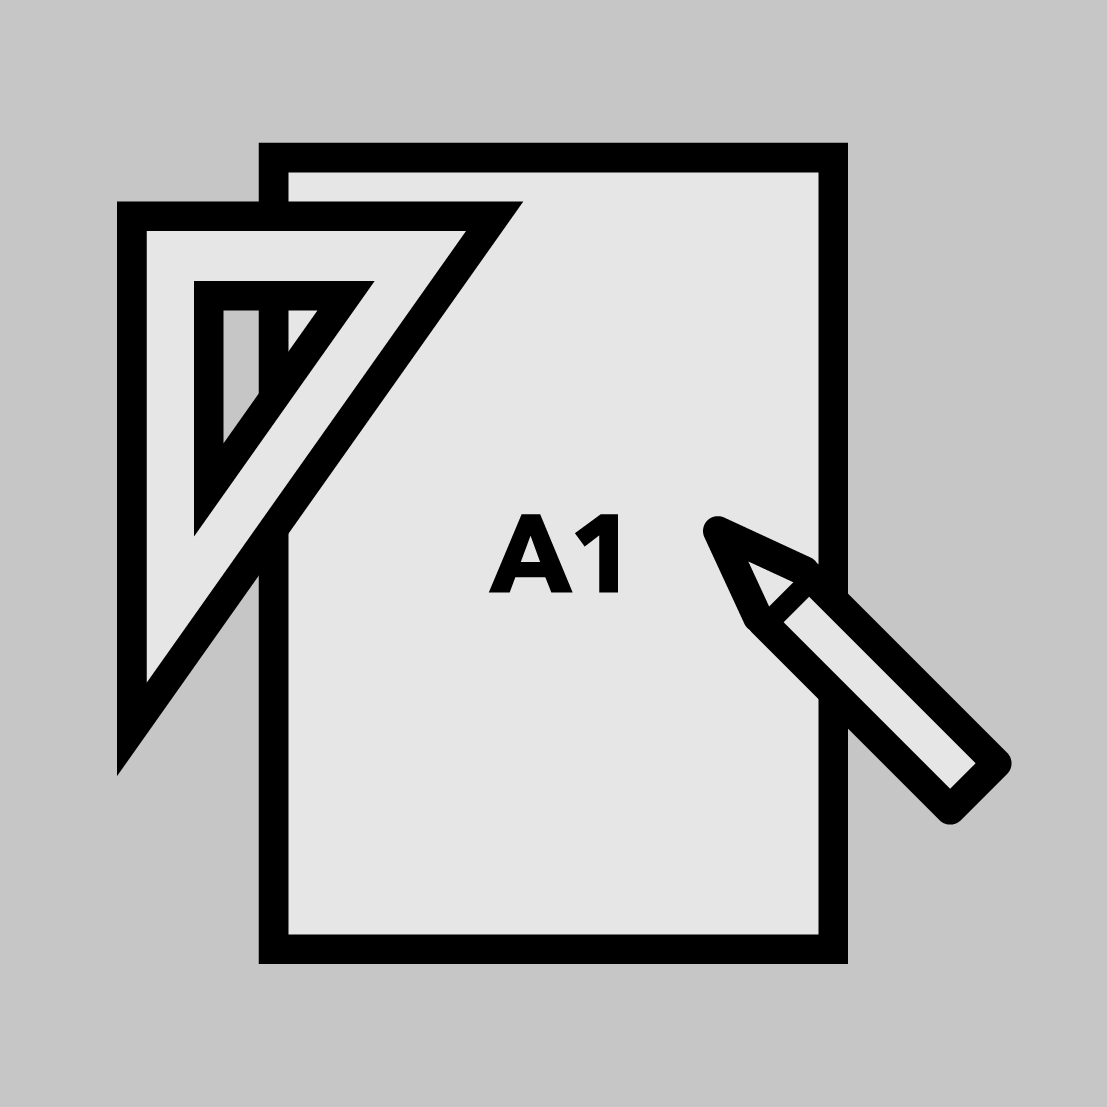 a1-portrait-icon-02.png